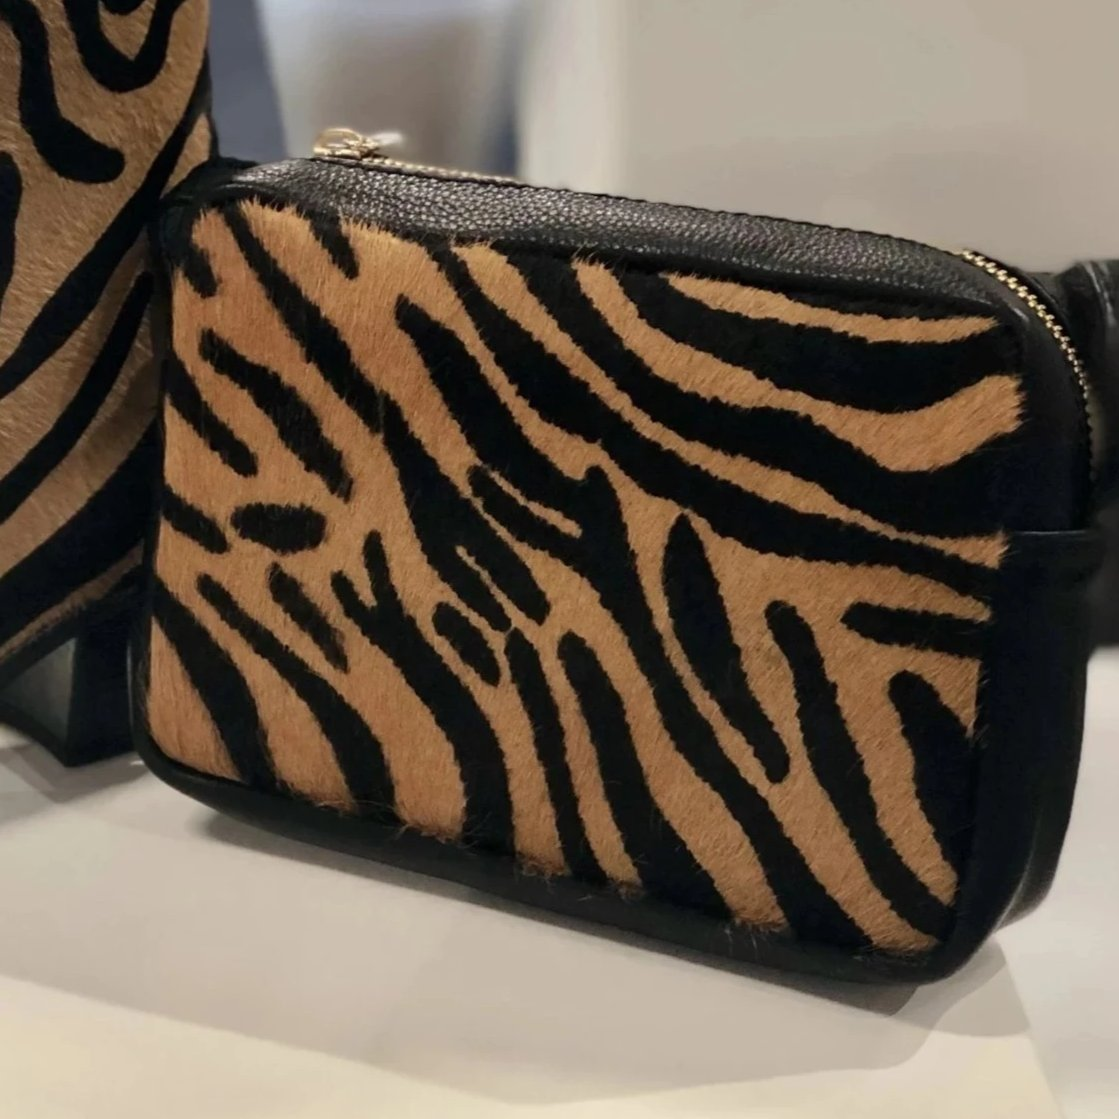 Genuine Leather Tiger Print Box Clutch Bag - Pretty Kitty Fashion